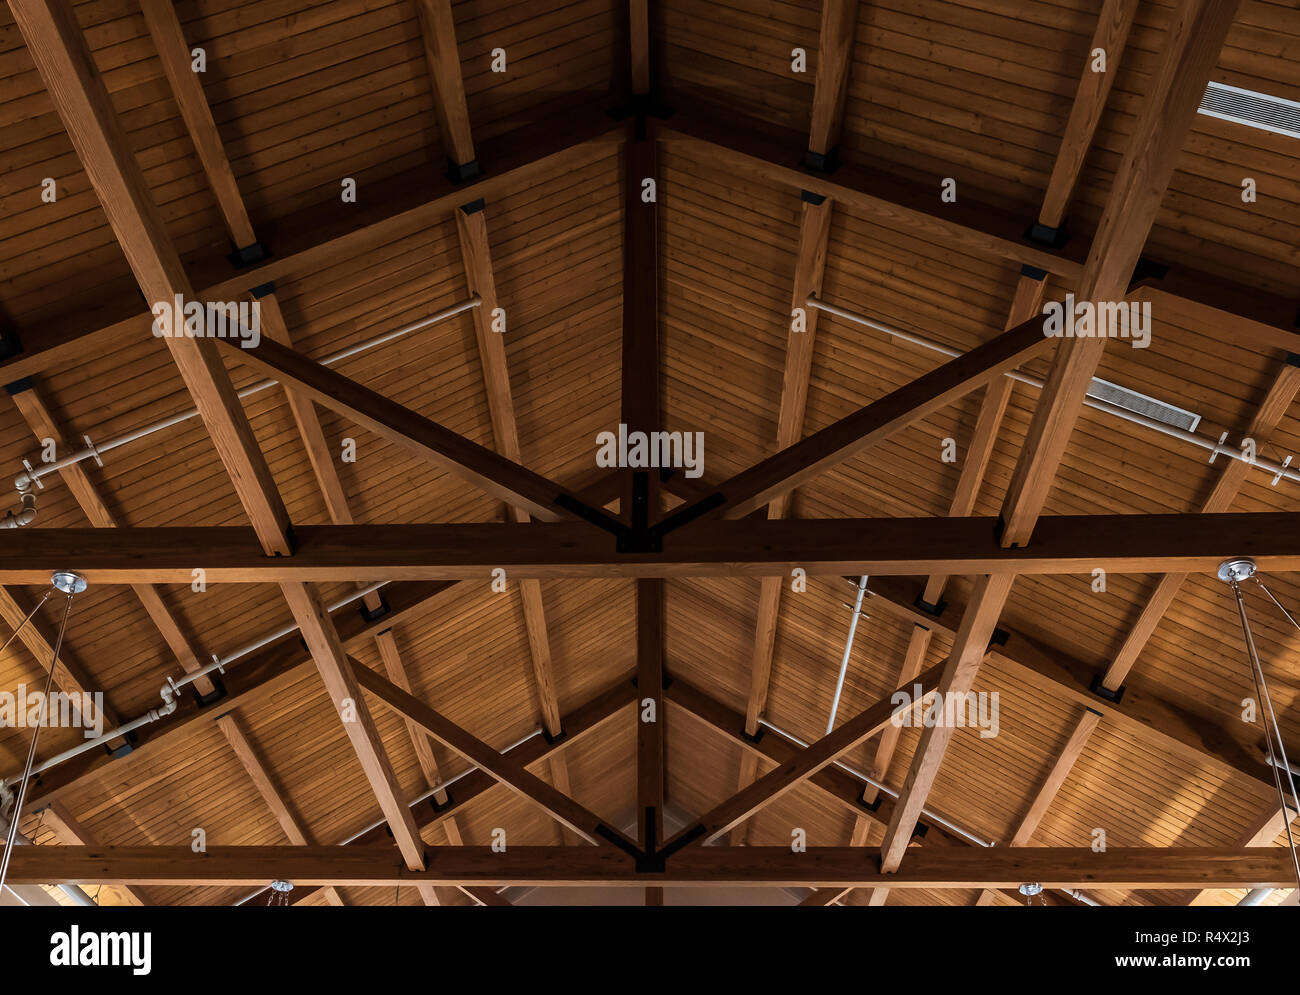 Underside of shed roof, showing trusses and plank roofing